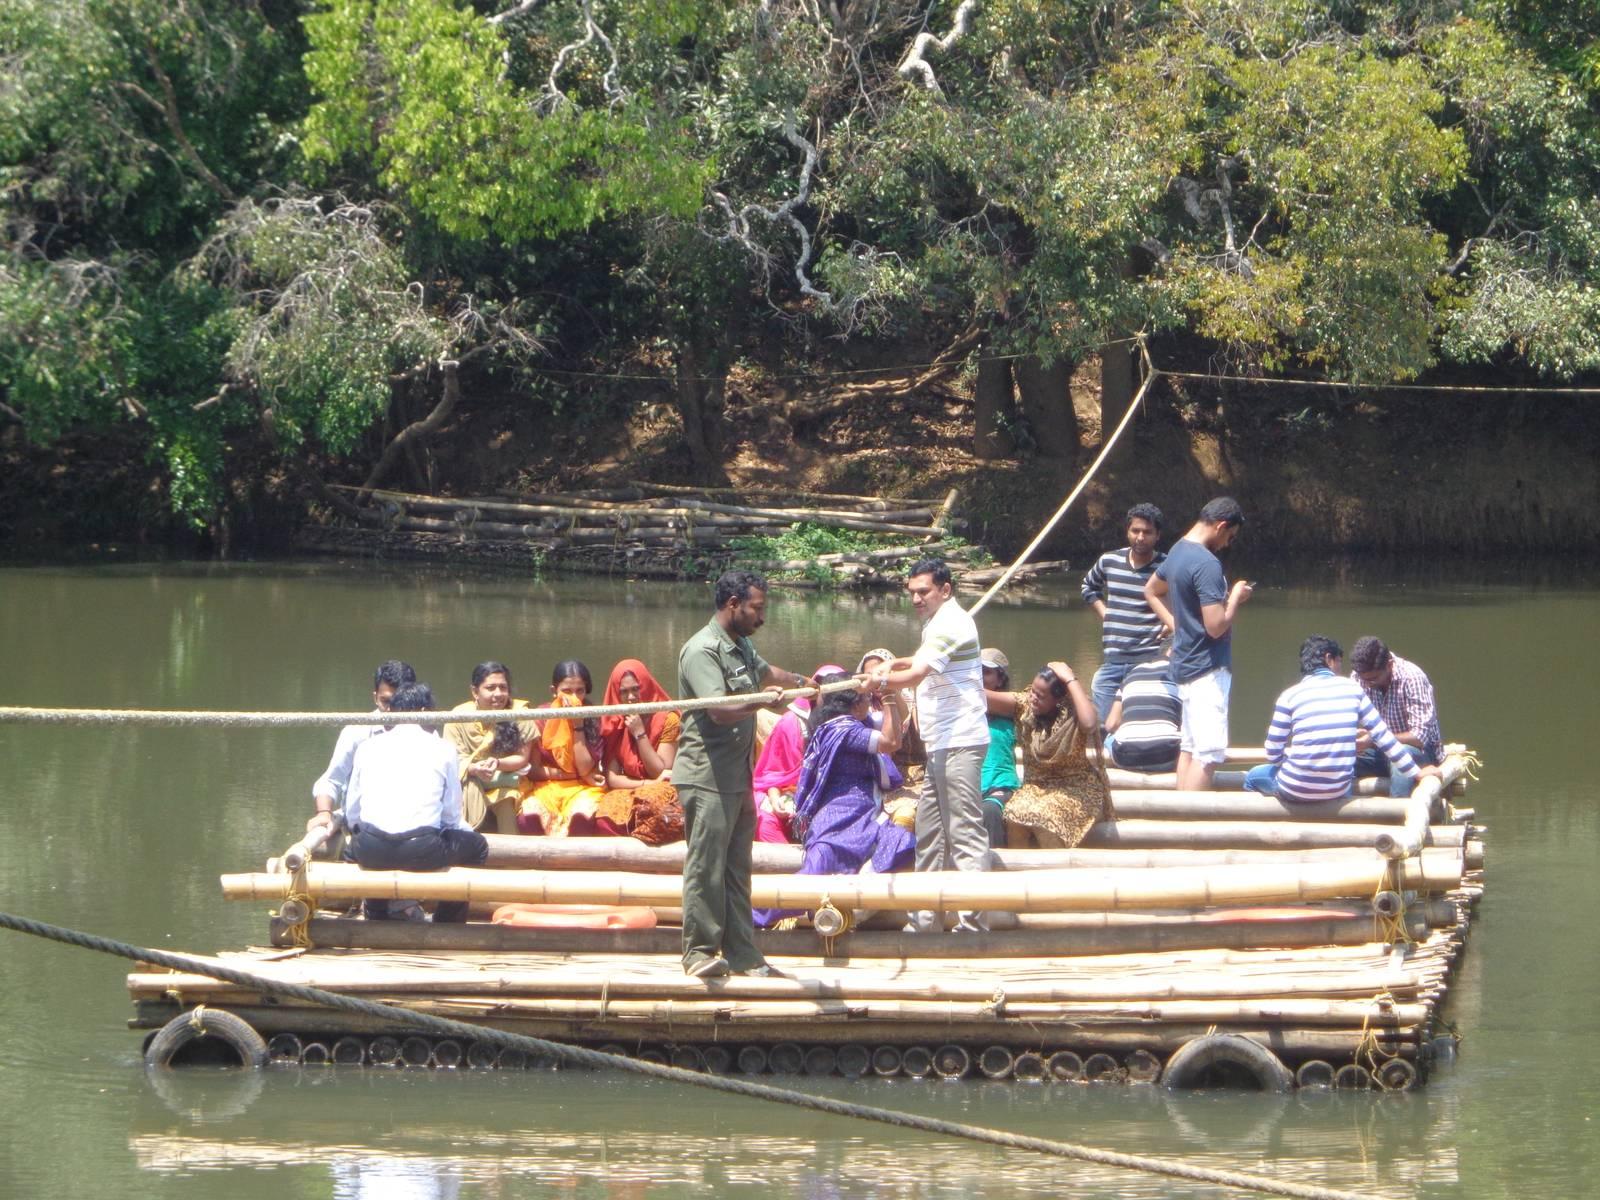 Kuruva Island had a raft to transport tourists to the island.